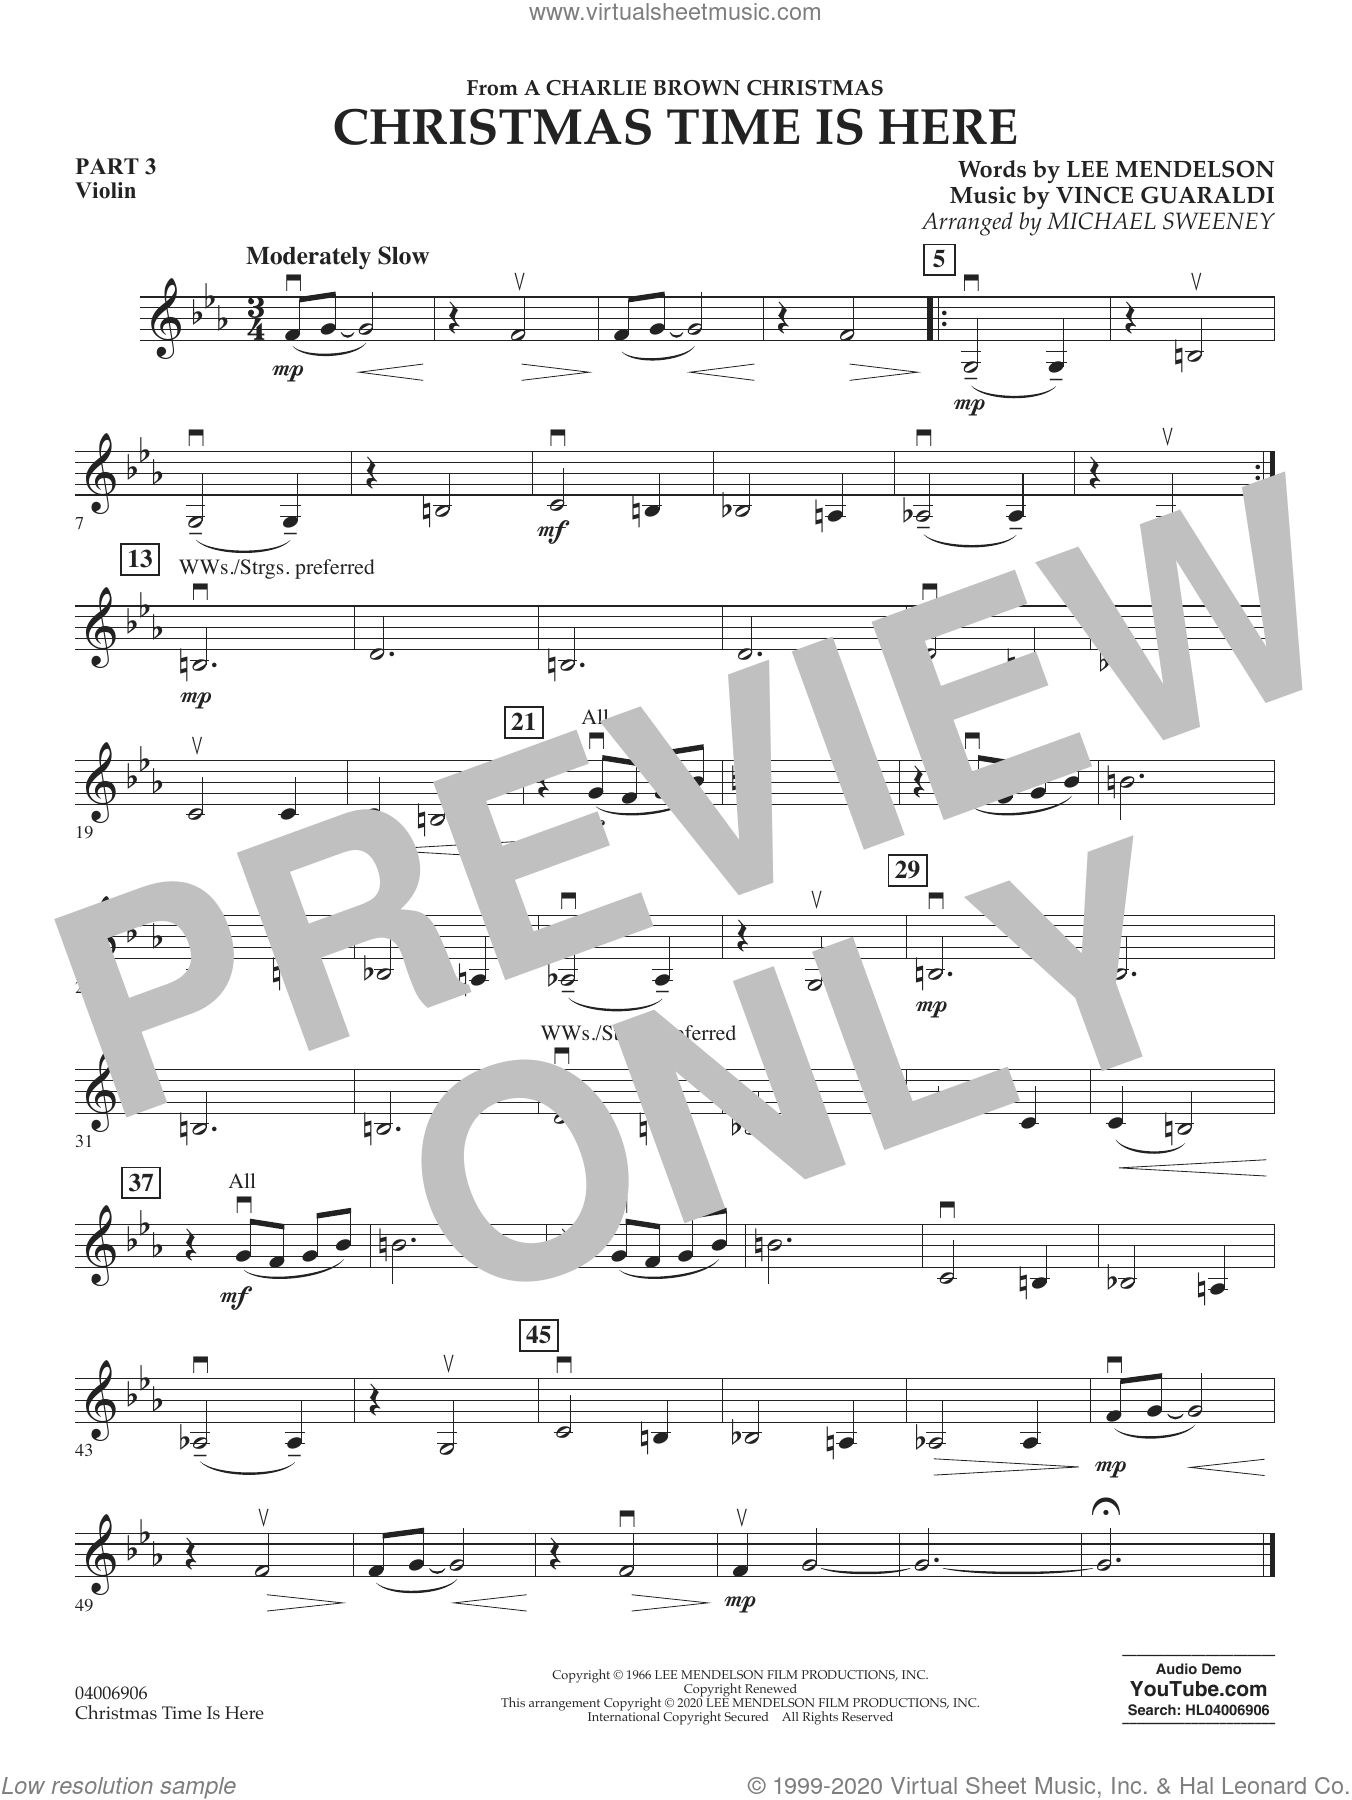 Christmas Time Is Here (arr. Michael Sweeney) sheet music for concert band (pt.3 - violin) by Vince Guaraldi, Michael Sweeney and Lee Mendelson, intermediate skill level